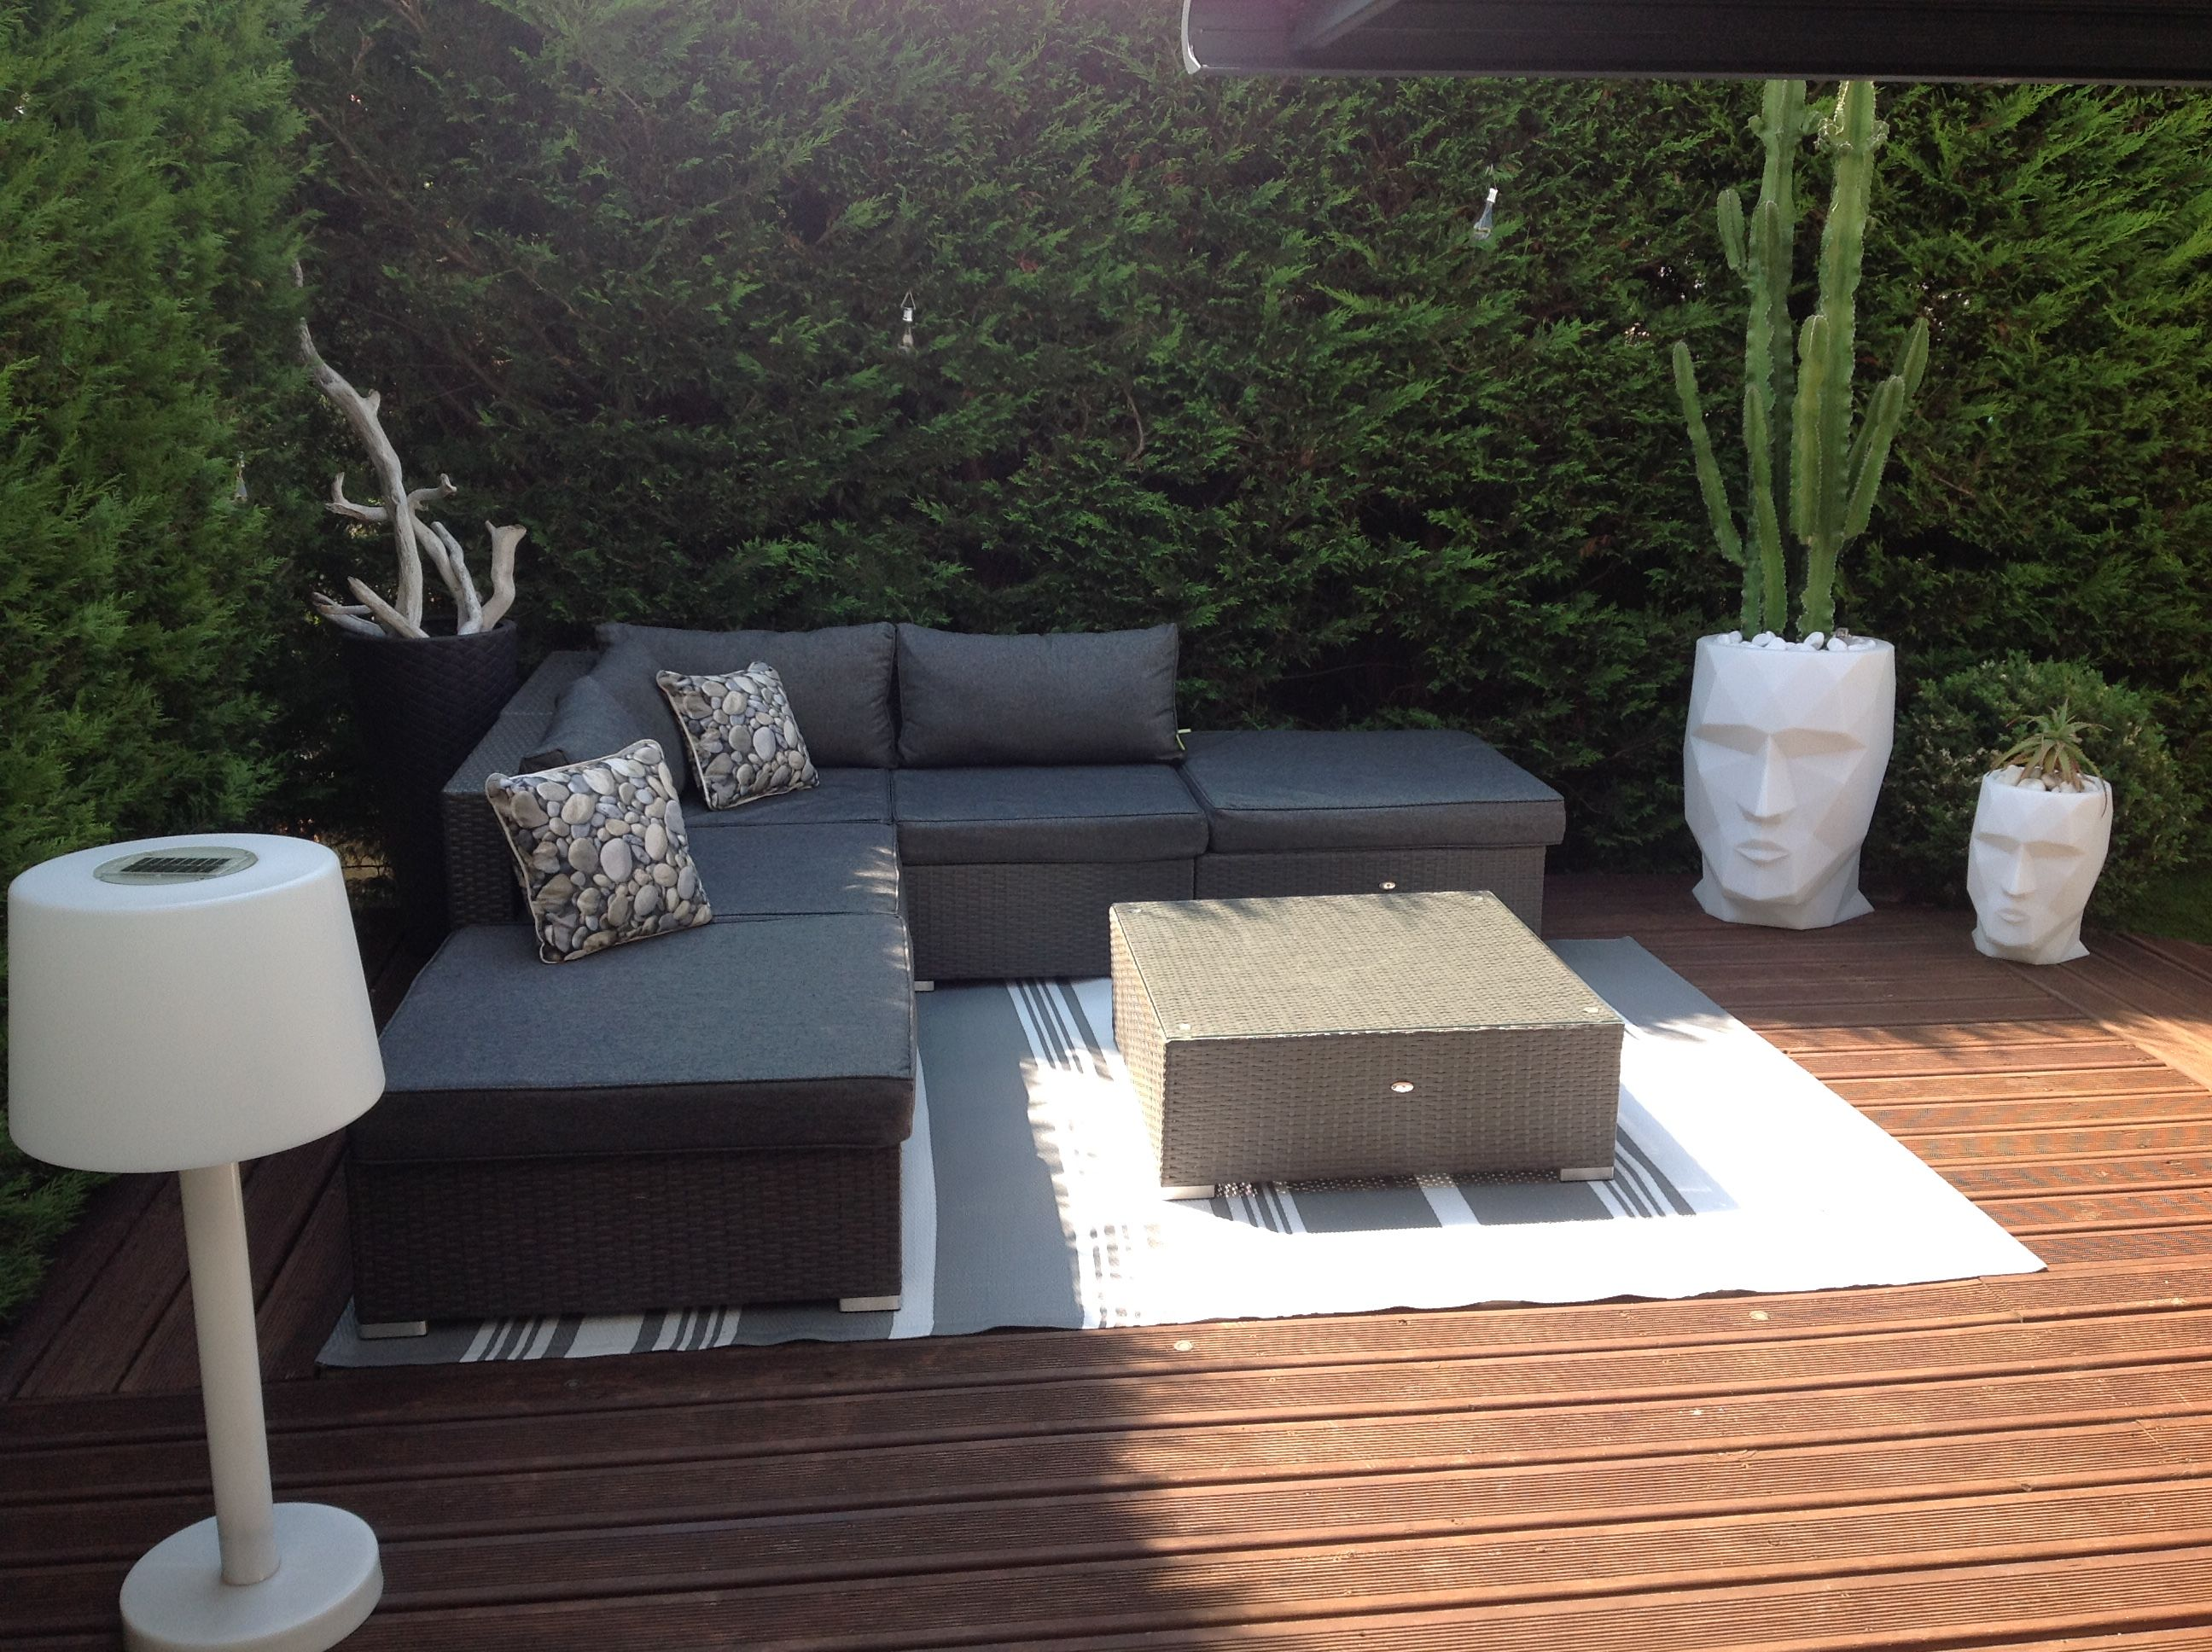 Milano salon de jardin 7 places en r sine tress e for Decoration exterieur